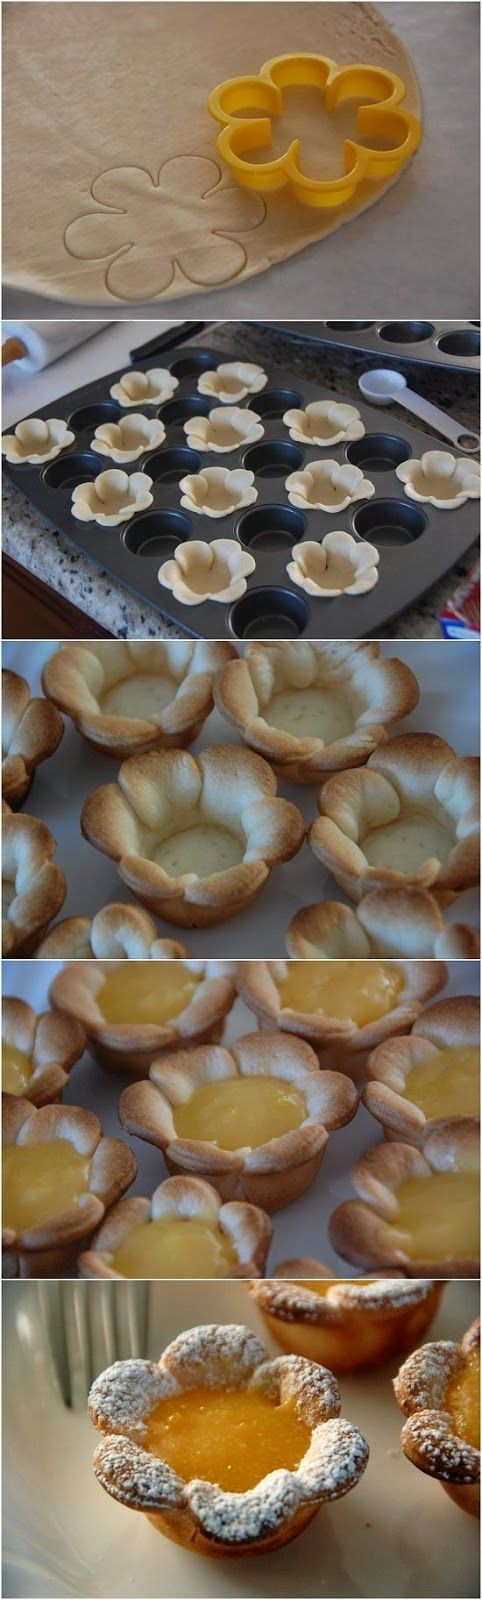 Flower shaped Mini Lemon Curd Tarts...well aren't these cute? would be cute for a shower